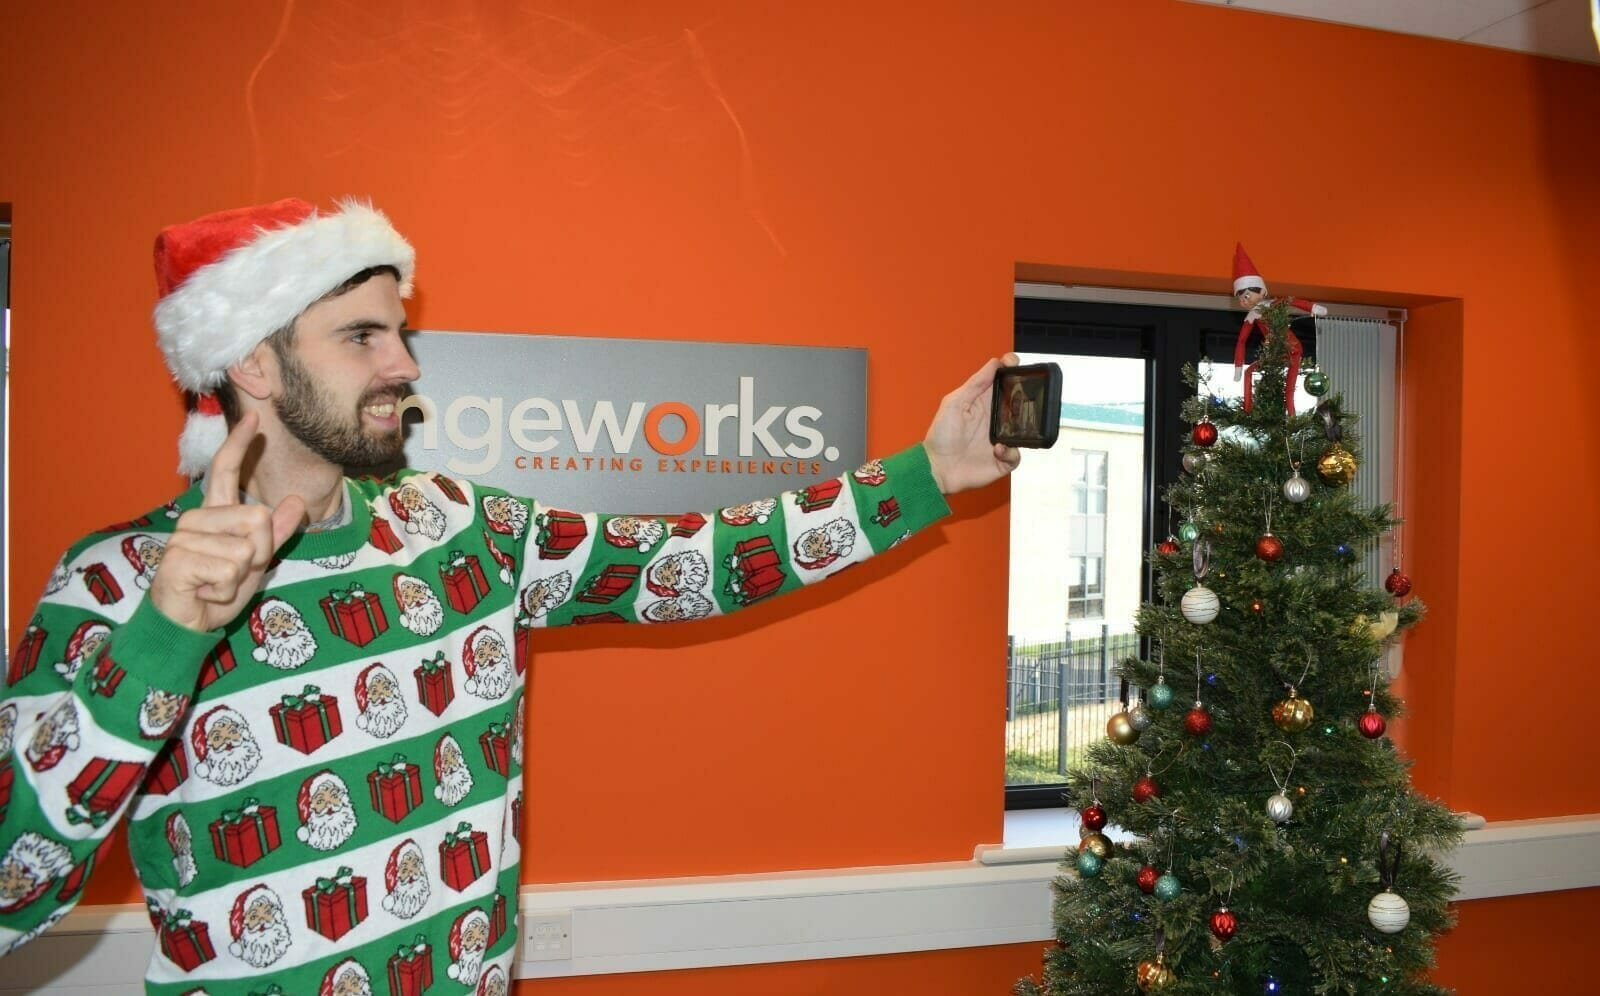 Delegate taking a selfie in front of the Orangeworks sign as part of one of their Christmas online games for remote teams.